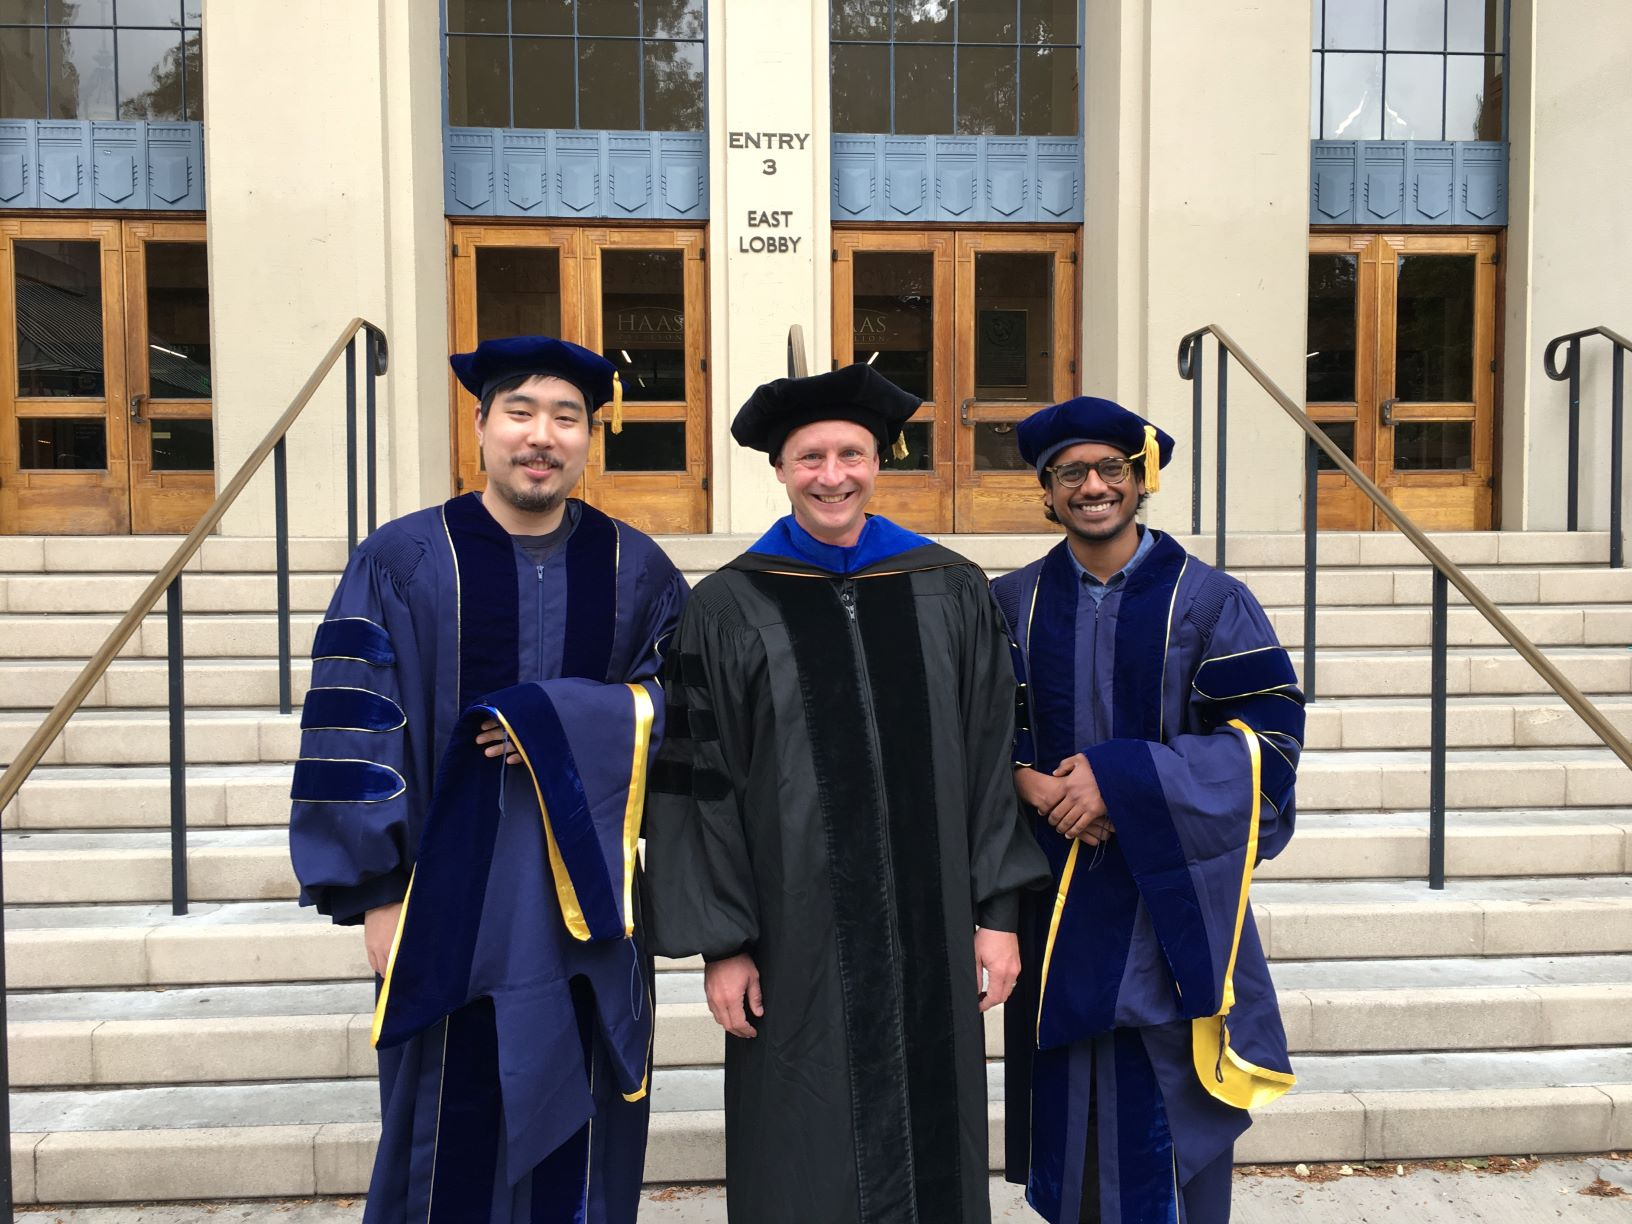 Graduates Jonathan Jui (left) and Shariq Mobin (right) are pictured with PhD Program Director Michael Silver (center).